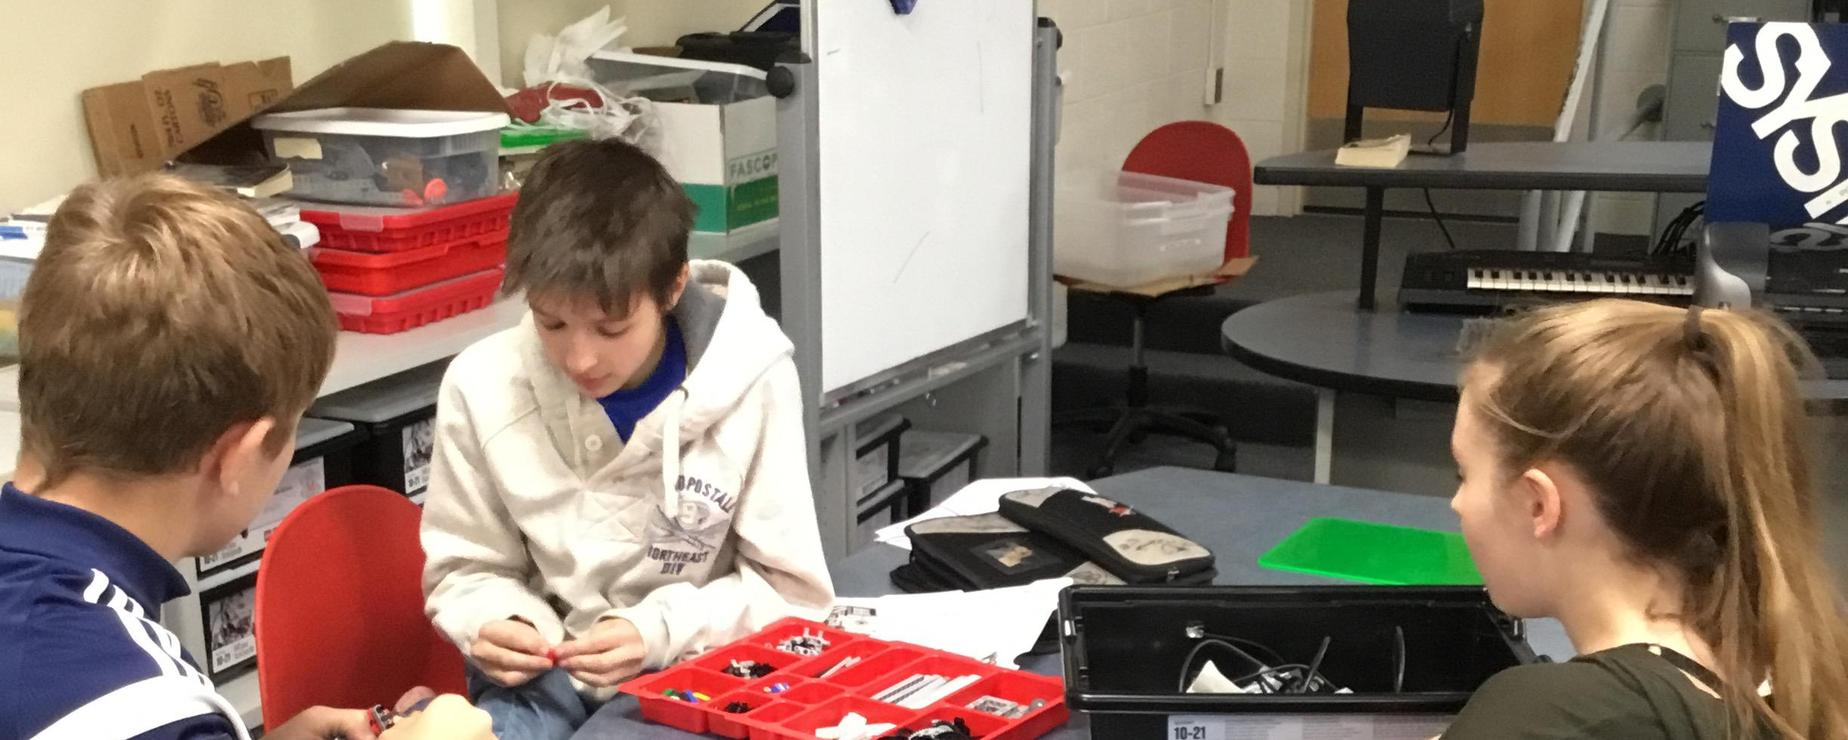 Three Robotics club members comparing tools to use to build a robot